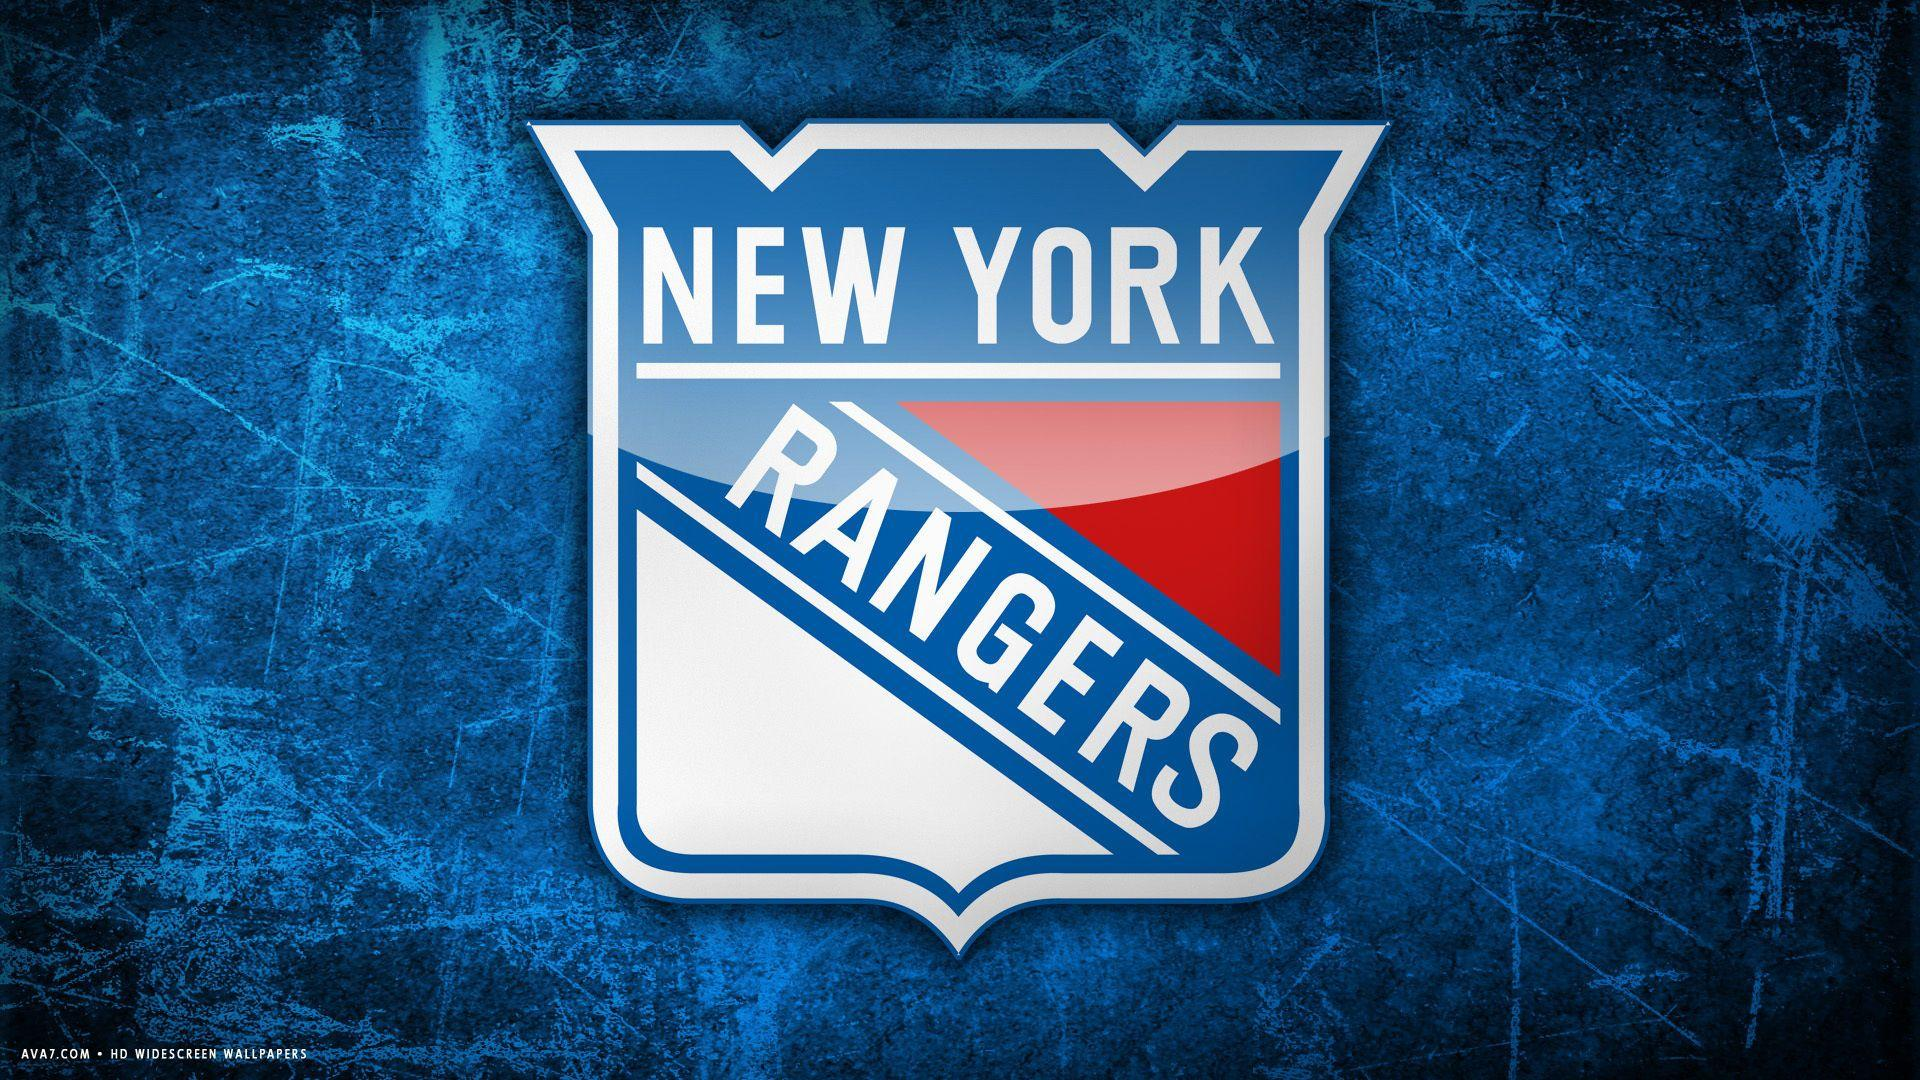 new york rangers nfl hockey team hd widescreen wallpapers / hockey